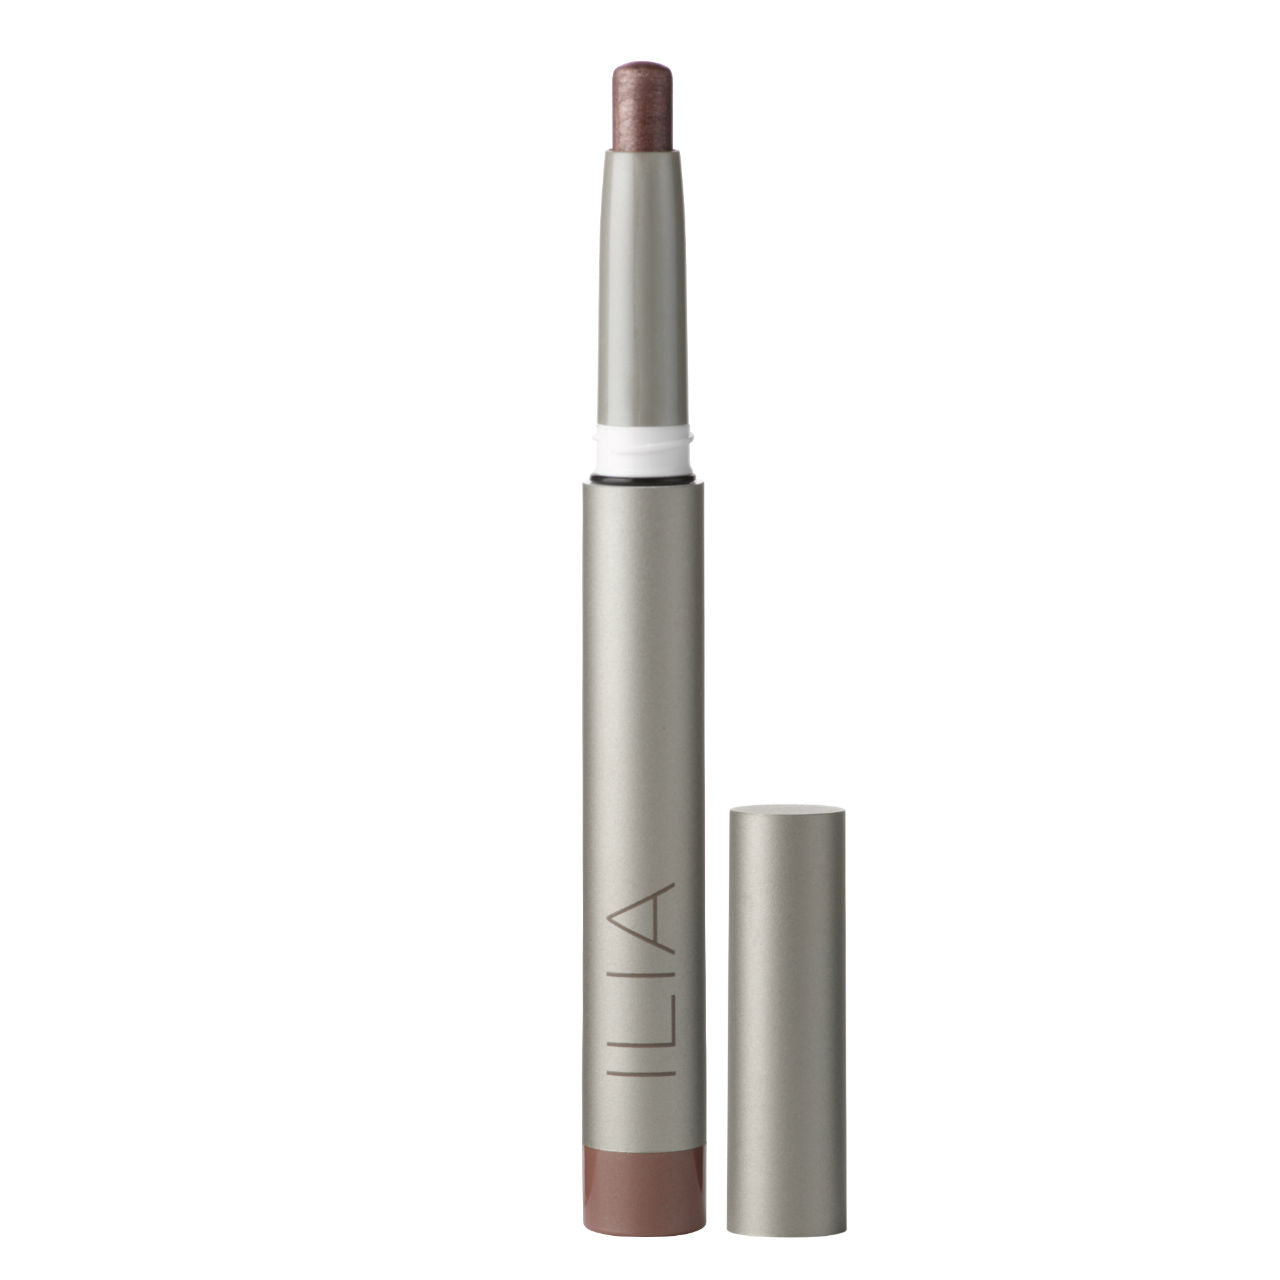 ILIA Silken Shadow Stick - Age Of Consent (Ash Brown)